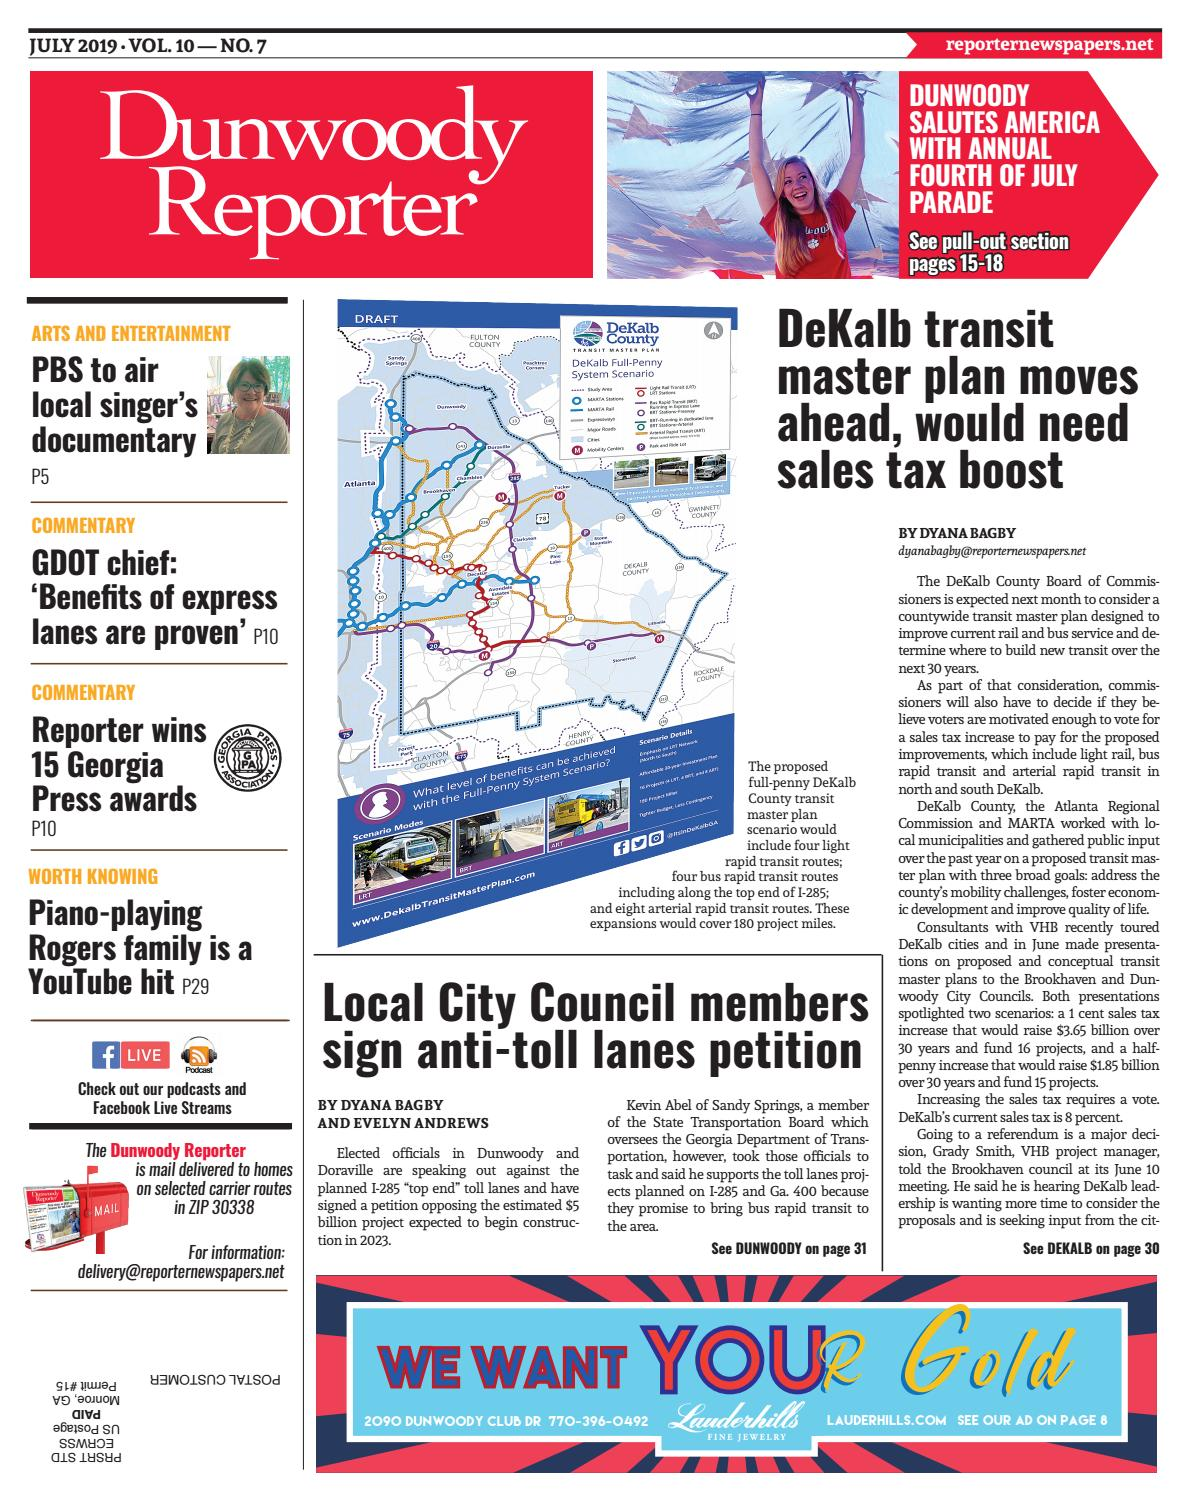 JULY 2019 - Dunwoody Reporter by Reporter Newspapers - issuu